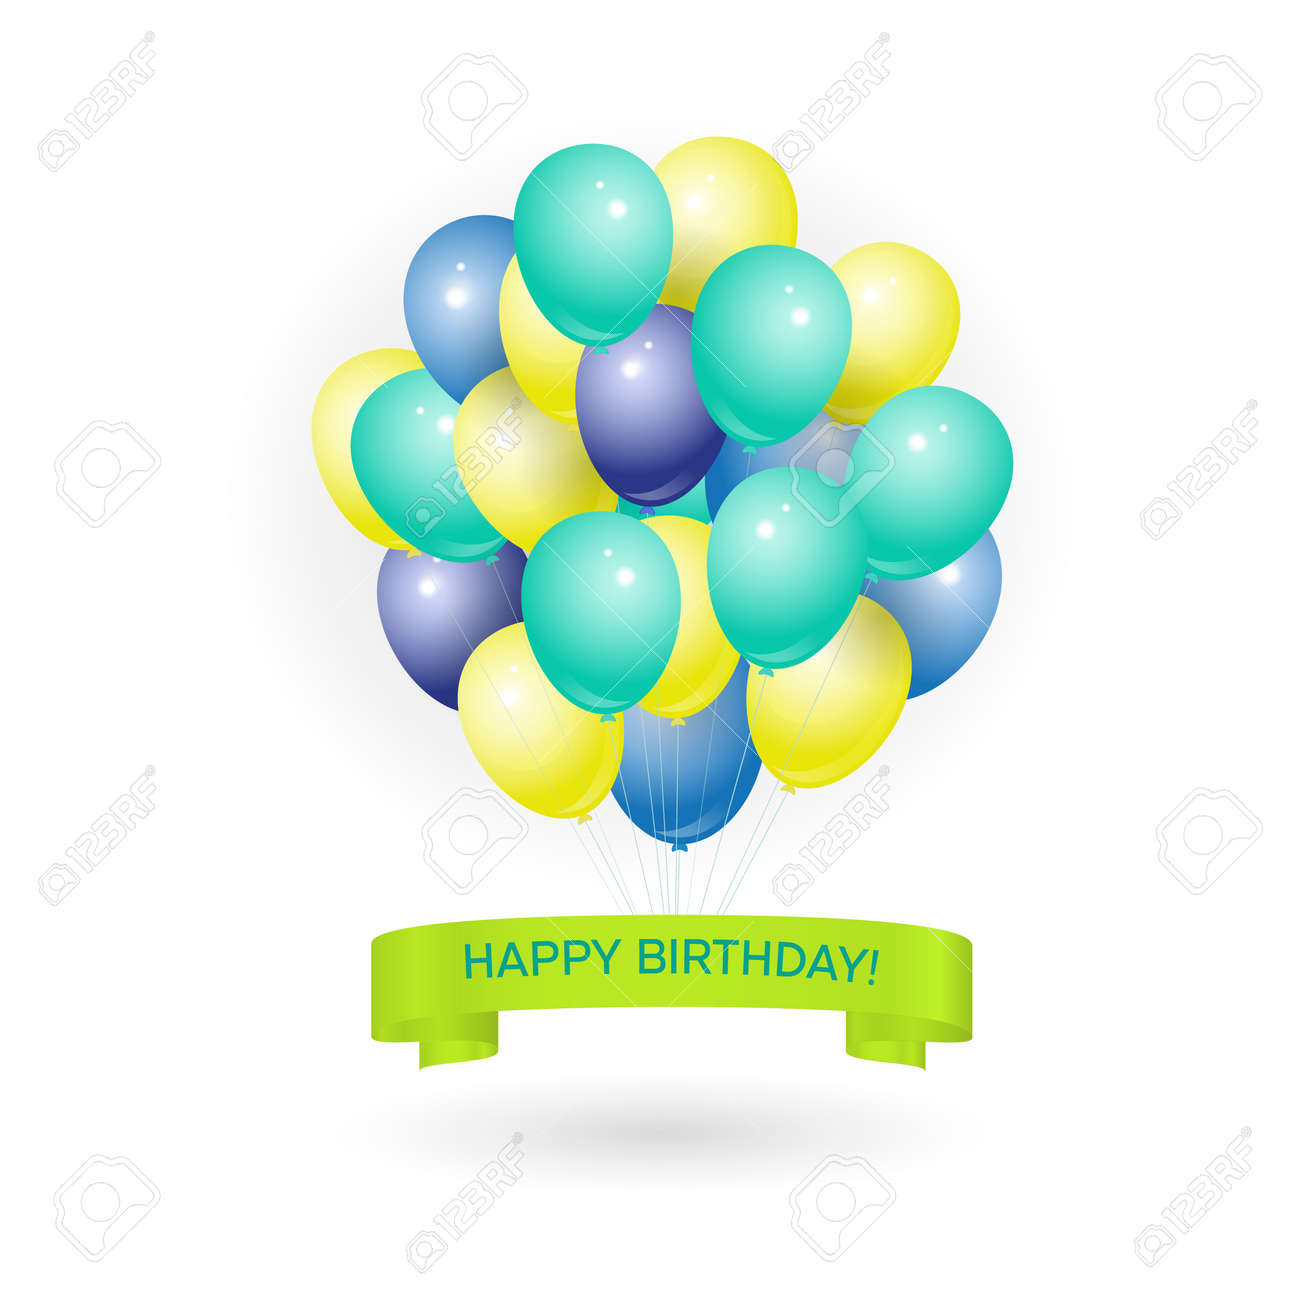 Happy Birthday Greeting Card With Volume Colored Balloons And